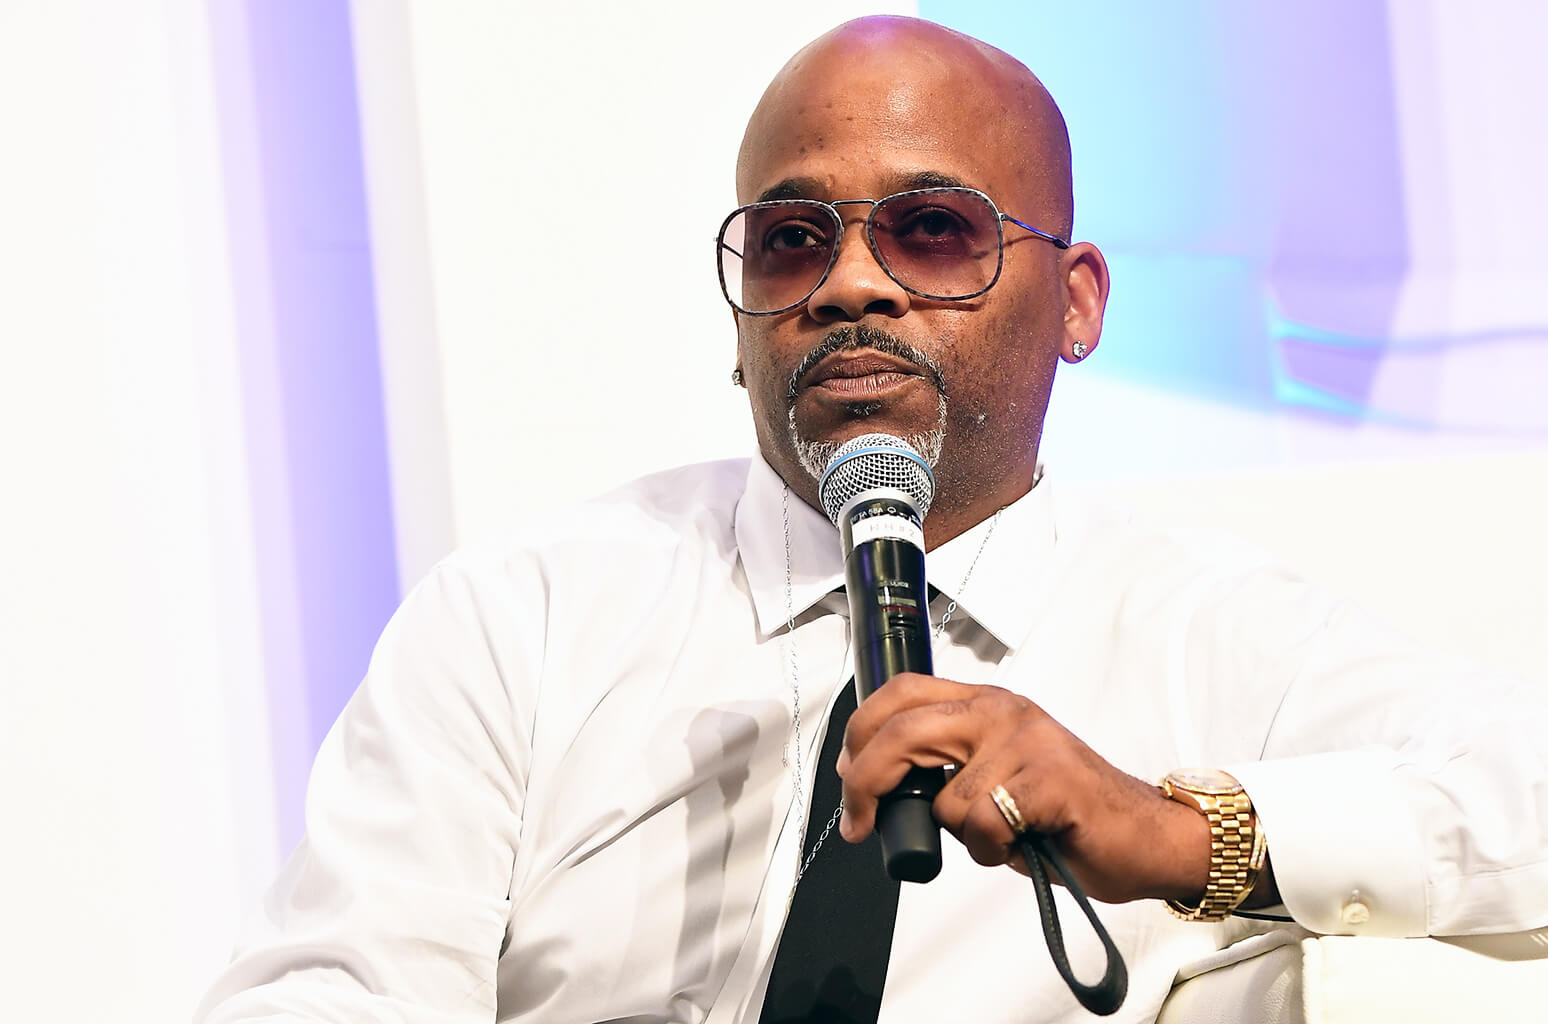 Dame Dash Reportedly Credits Himself for Launching Kanye West, Kevin Hart's Careers